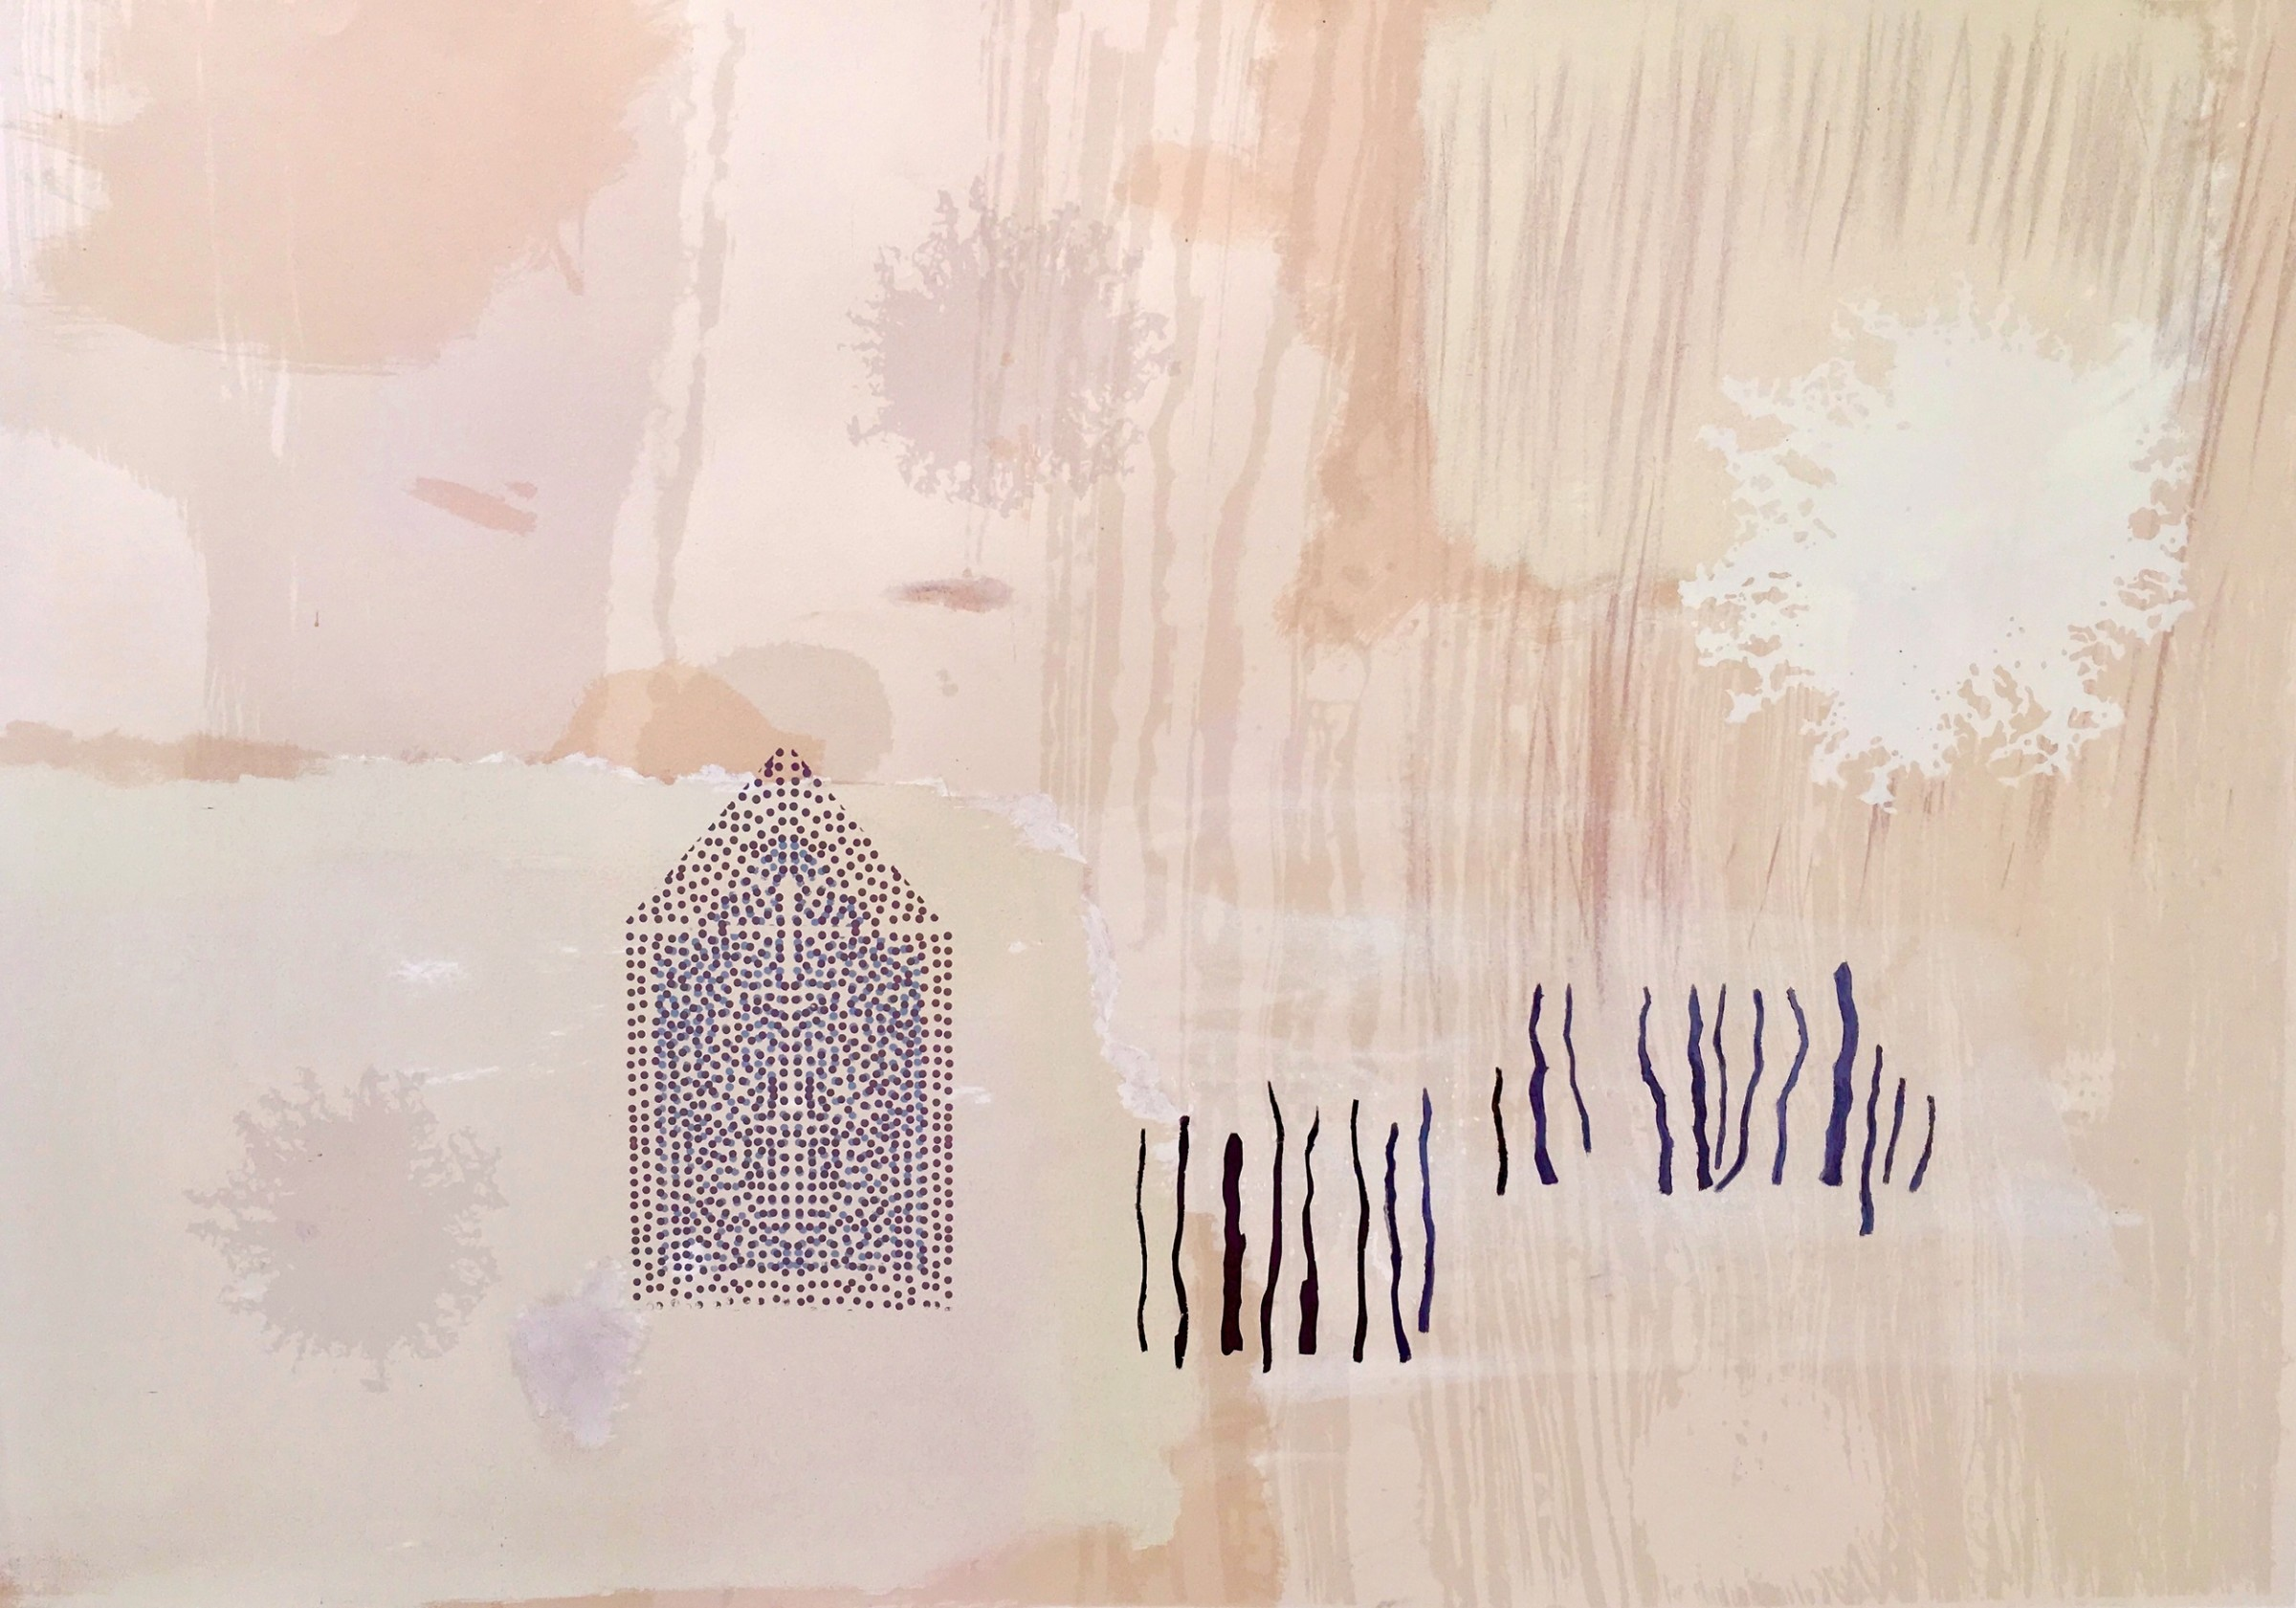 """<span class=""""link fancybox-details-link""""><a href=""""/exhibitions/17/works/image_standalone755/"""">View Detail Page</a></span><p><strong>Jenny Morse</strong></p><p>Pink Murmuration</p><p>screenprint monoprint 1/1</p><p>108 x 81cm</p><p>£850 framed</p>"""